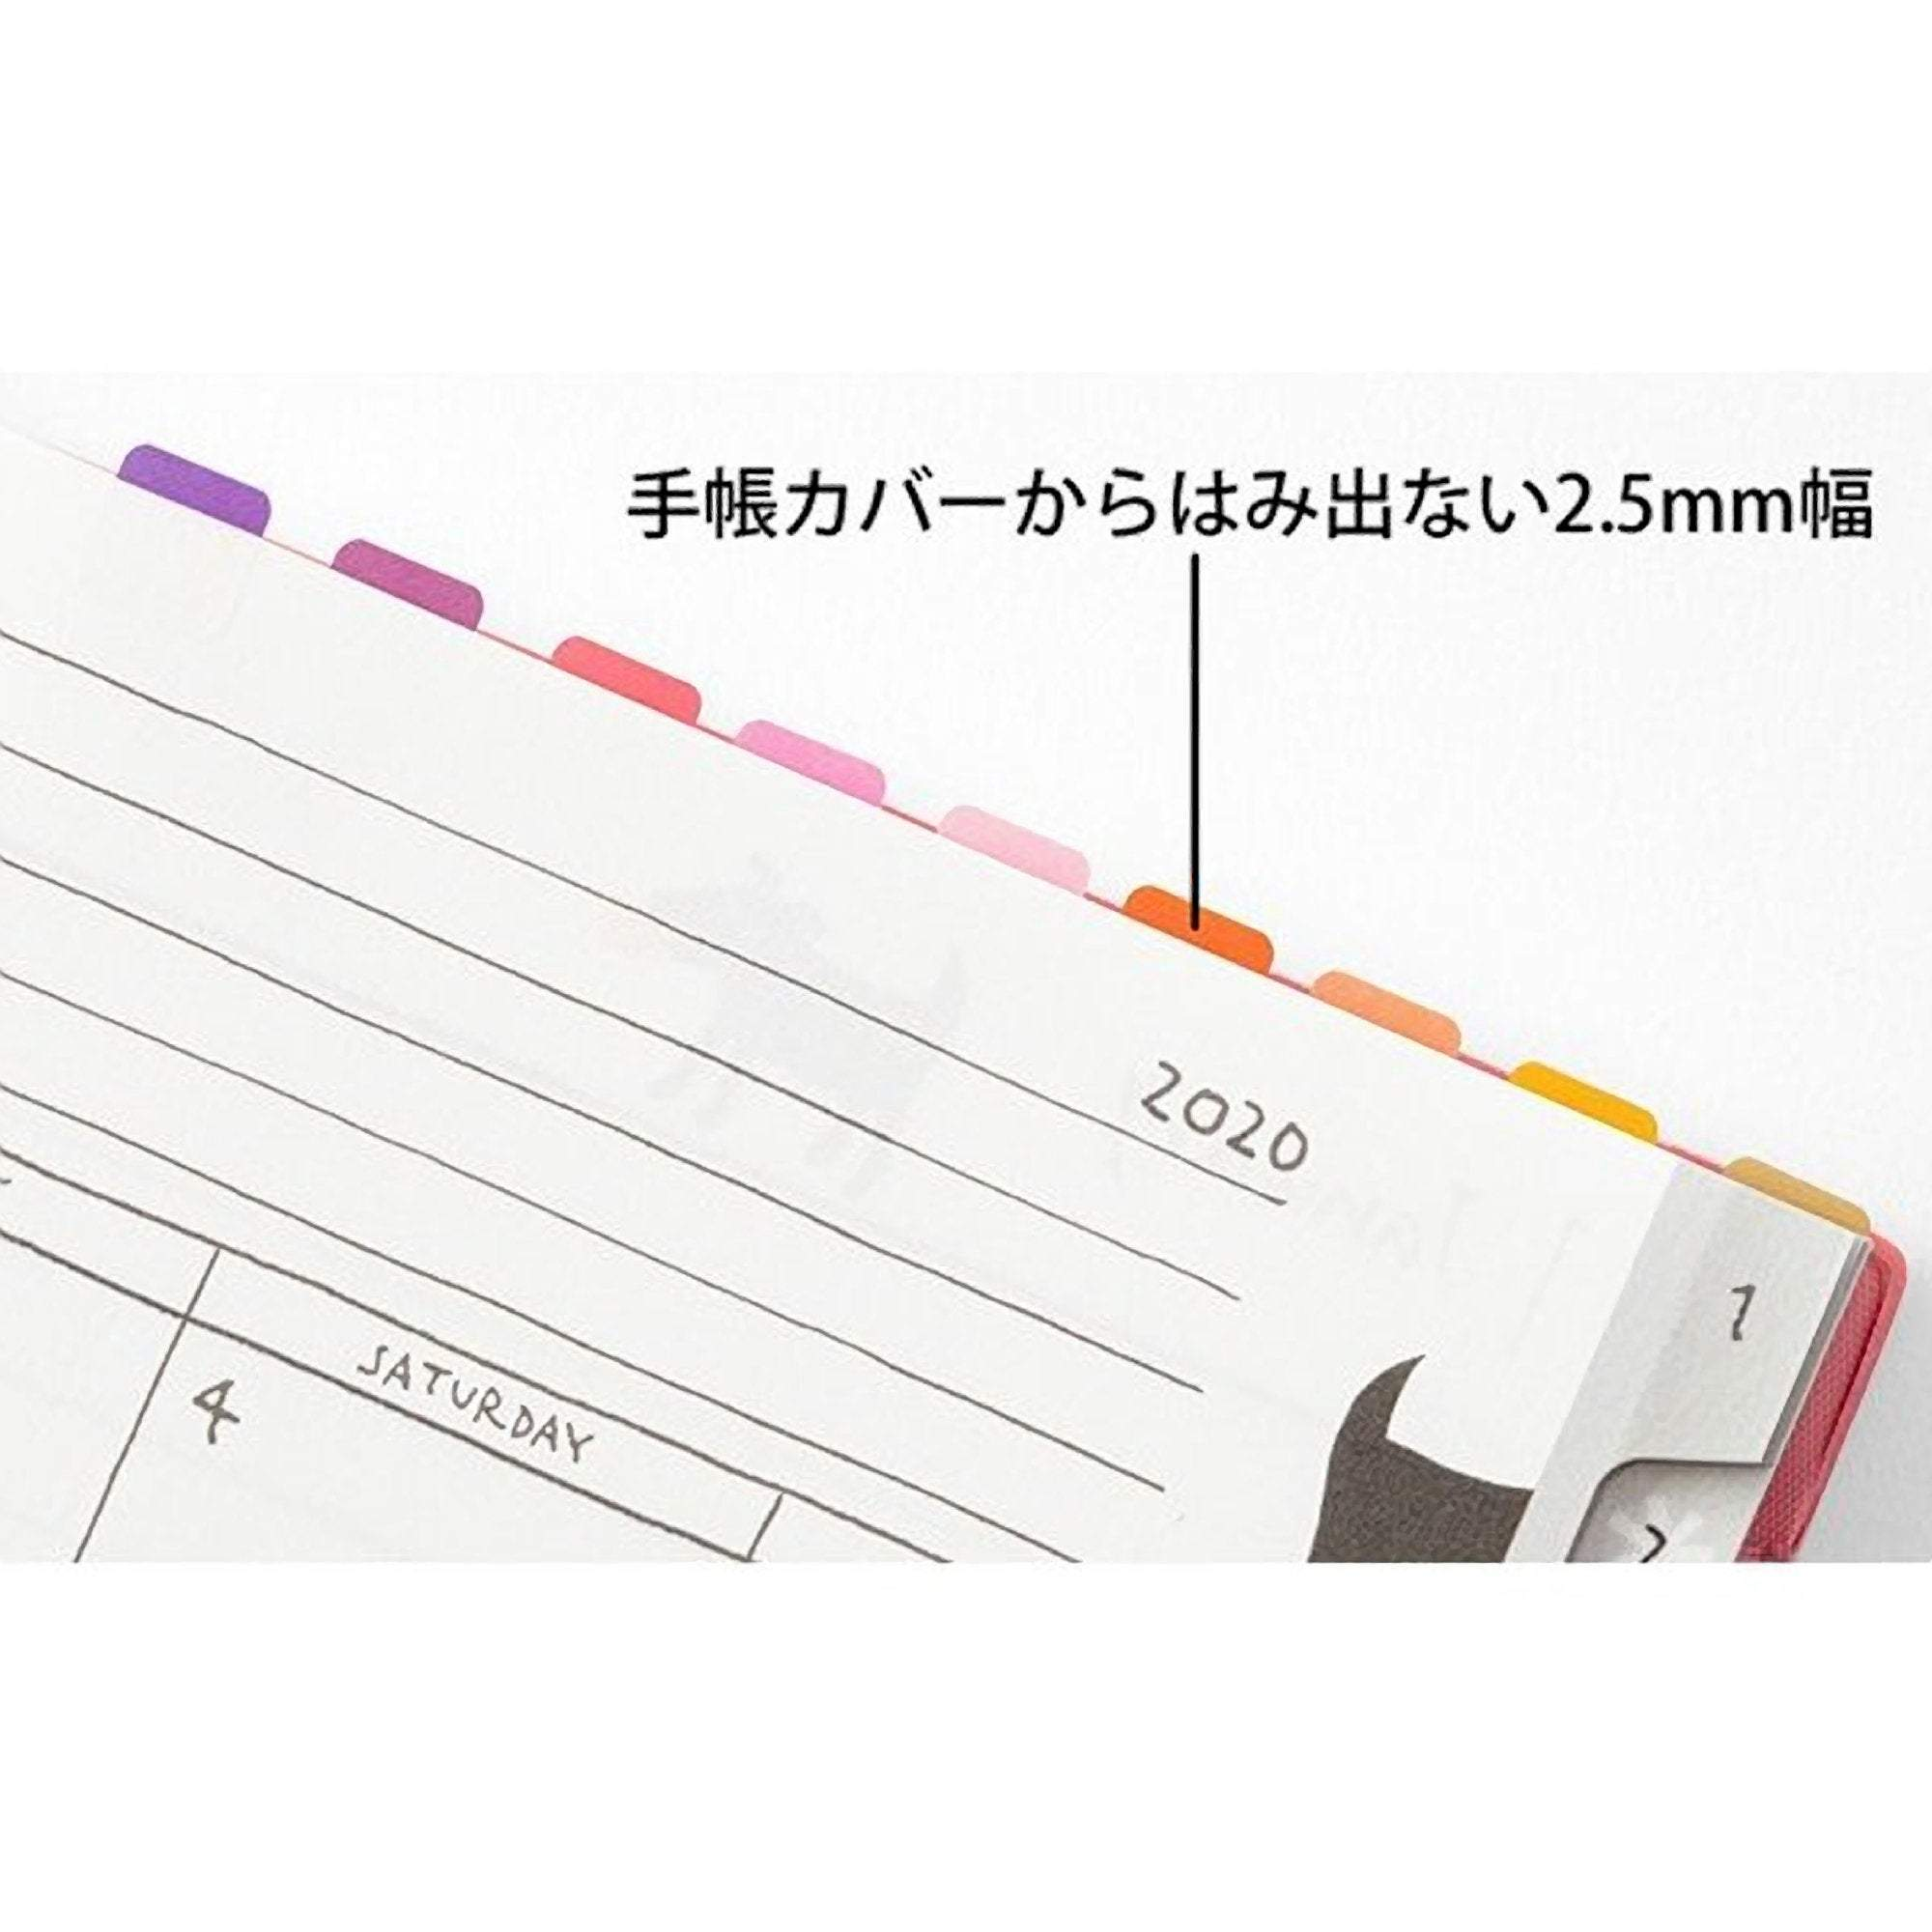 MIDORI Chiratto Index Label Blank VIVID Rainbow Colors Planner Index Tabs - The Stationery Life!